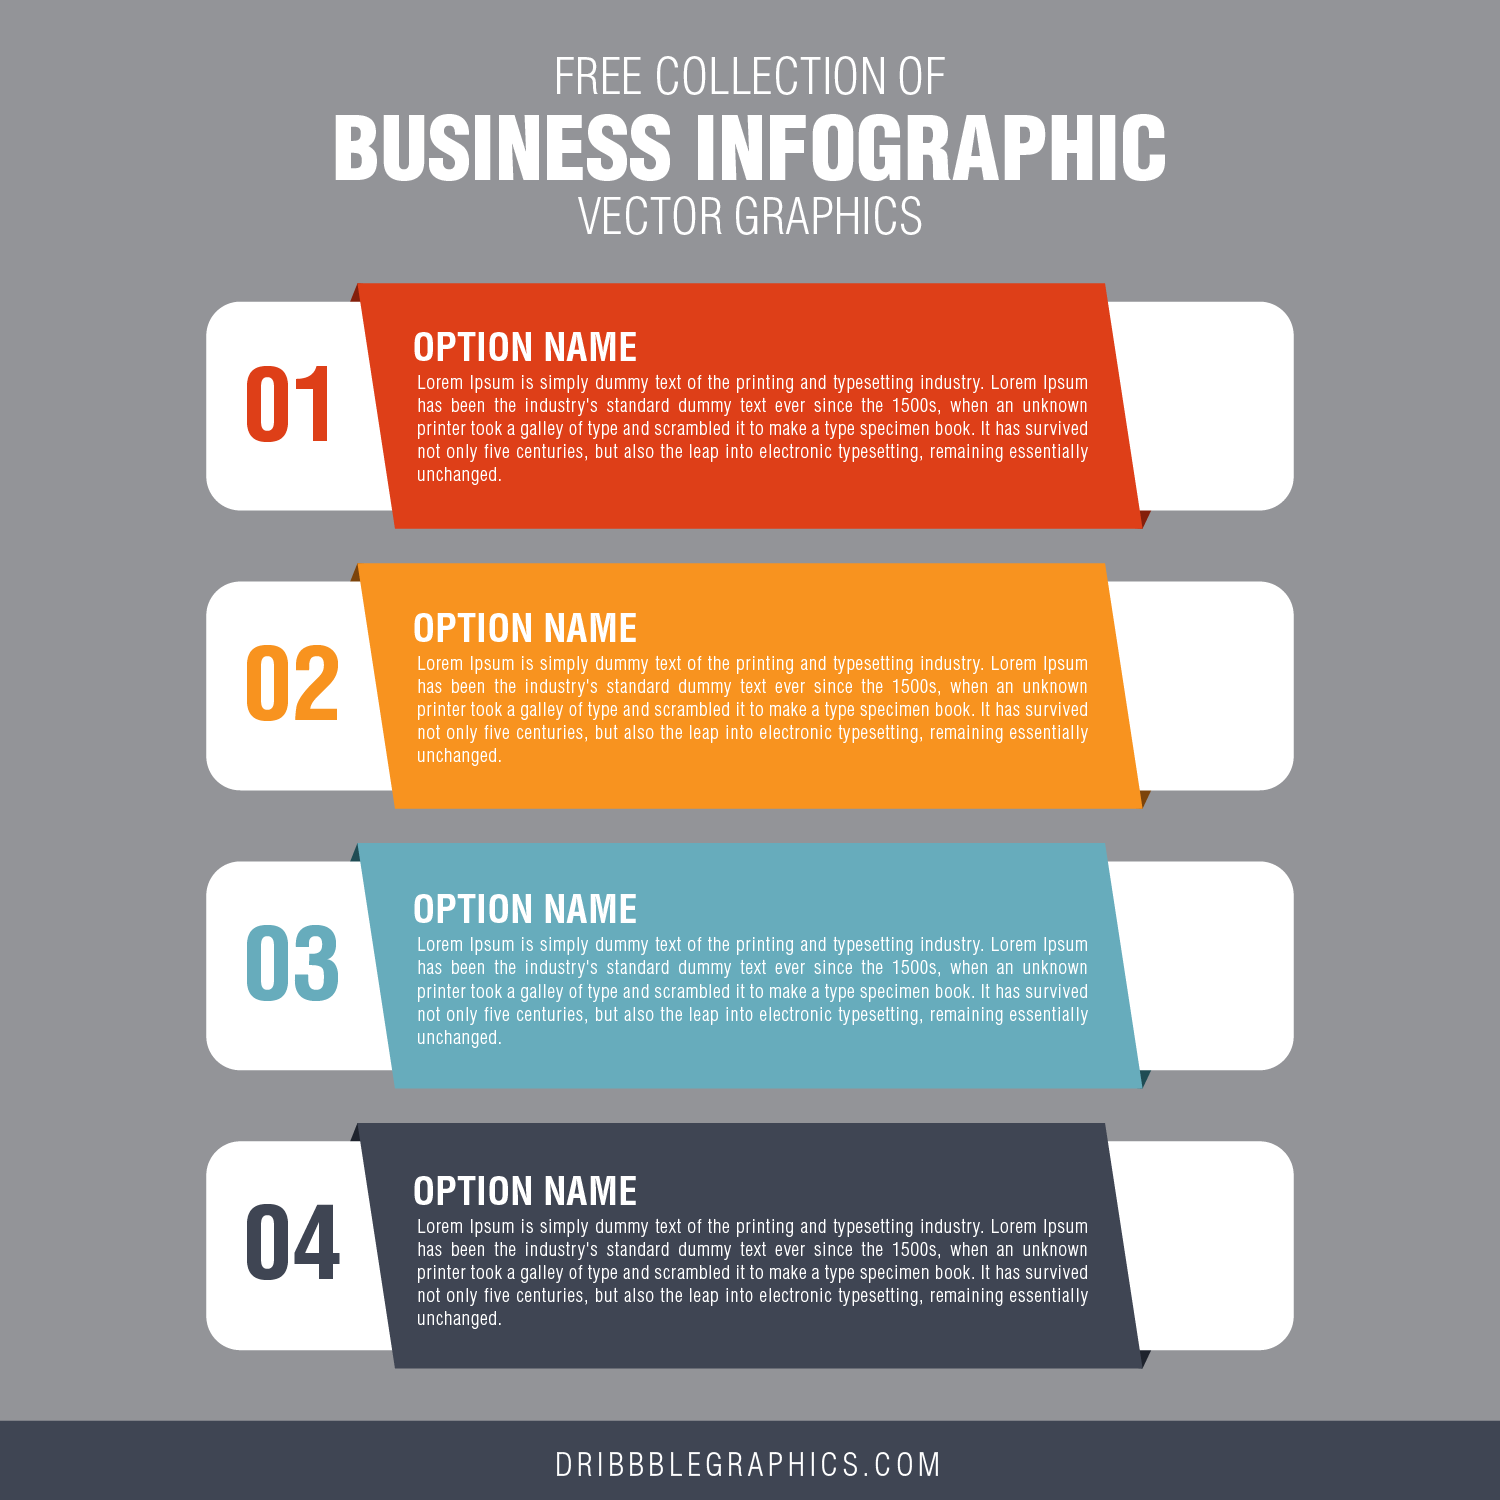 Free Collection of Business Infographic Vector Graphics-03